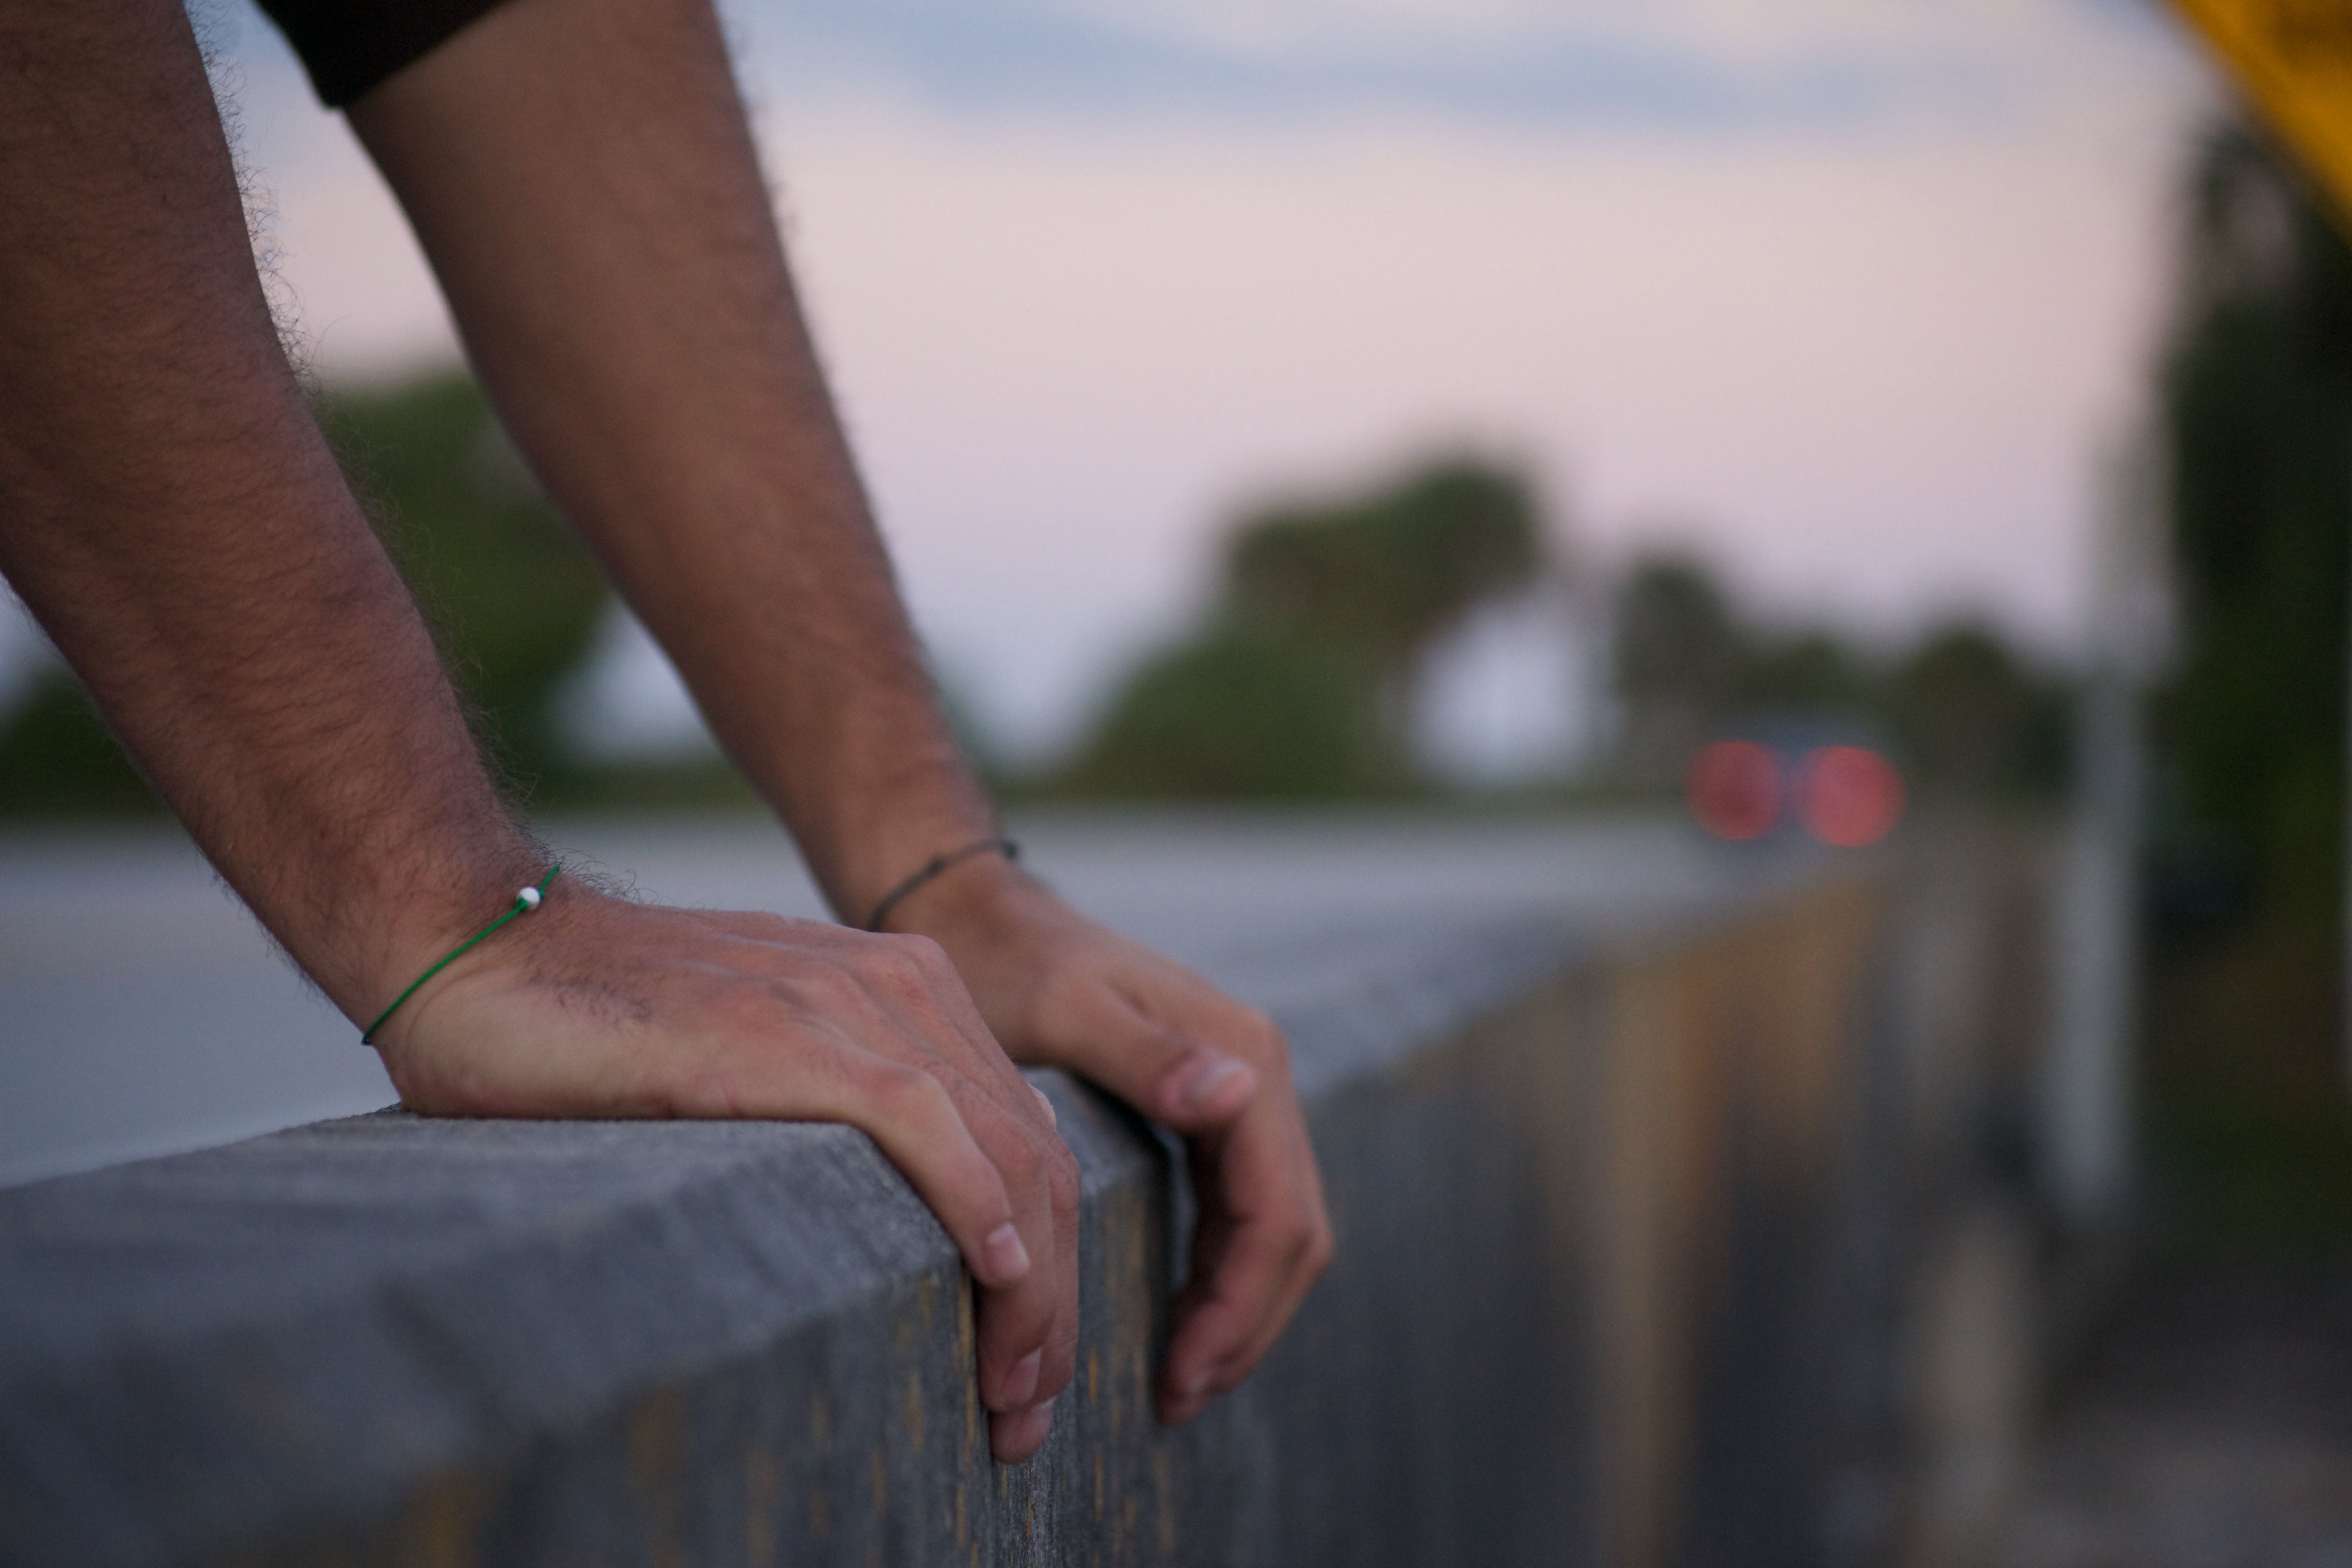 Modeled Love Hope Friendship Bracelet with, blurred, scenic background of a road